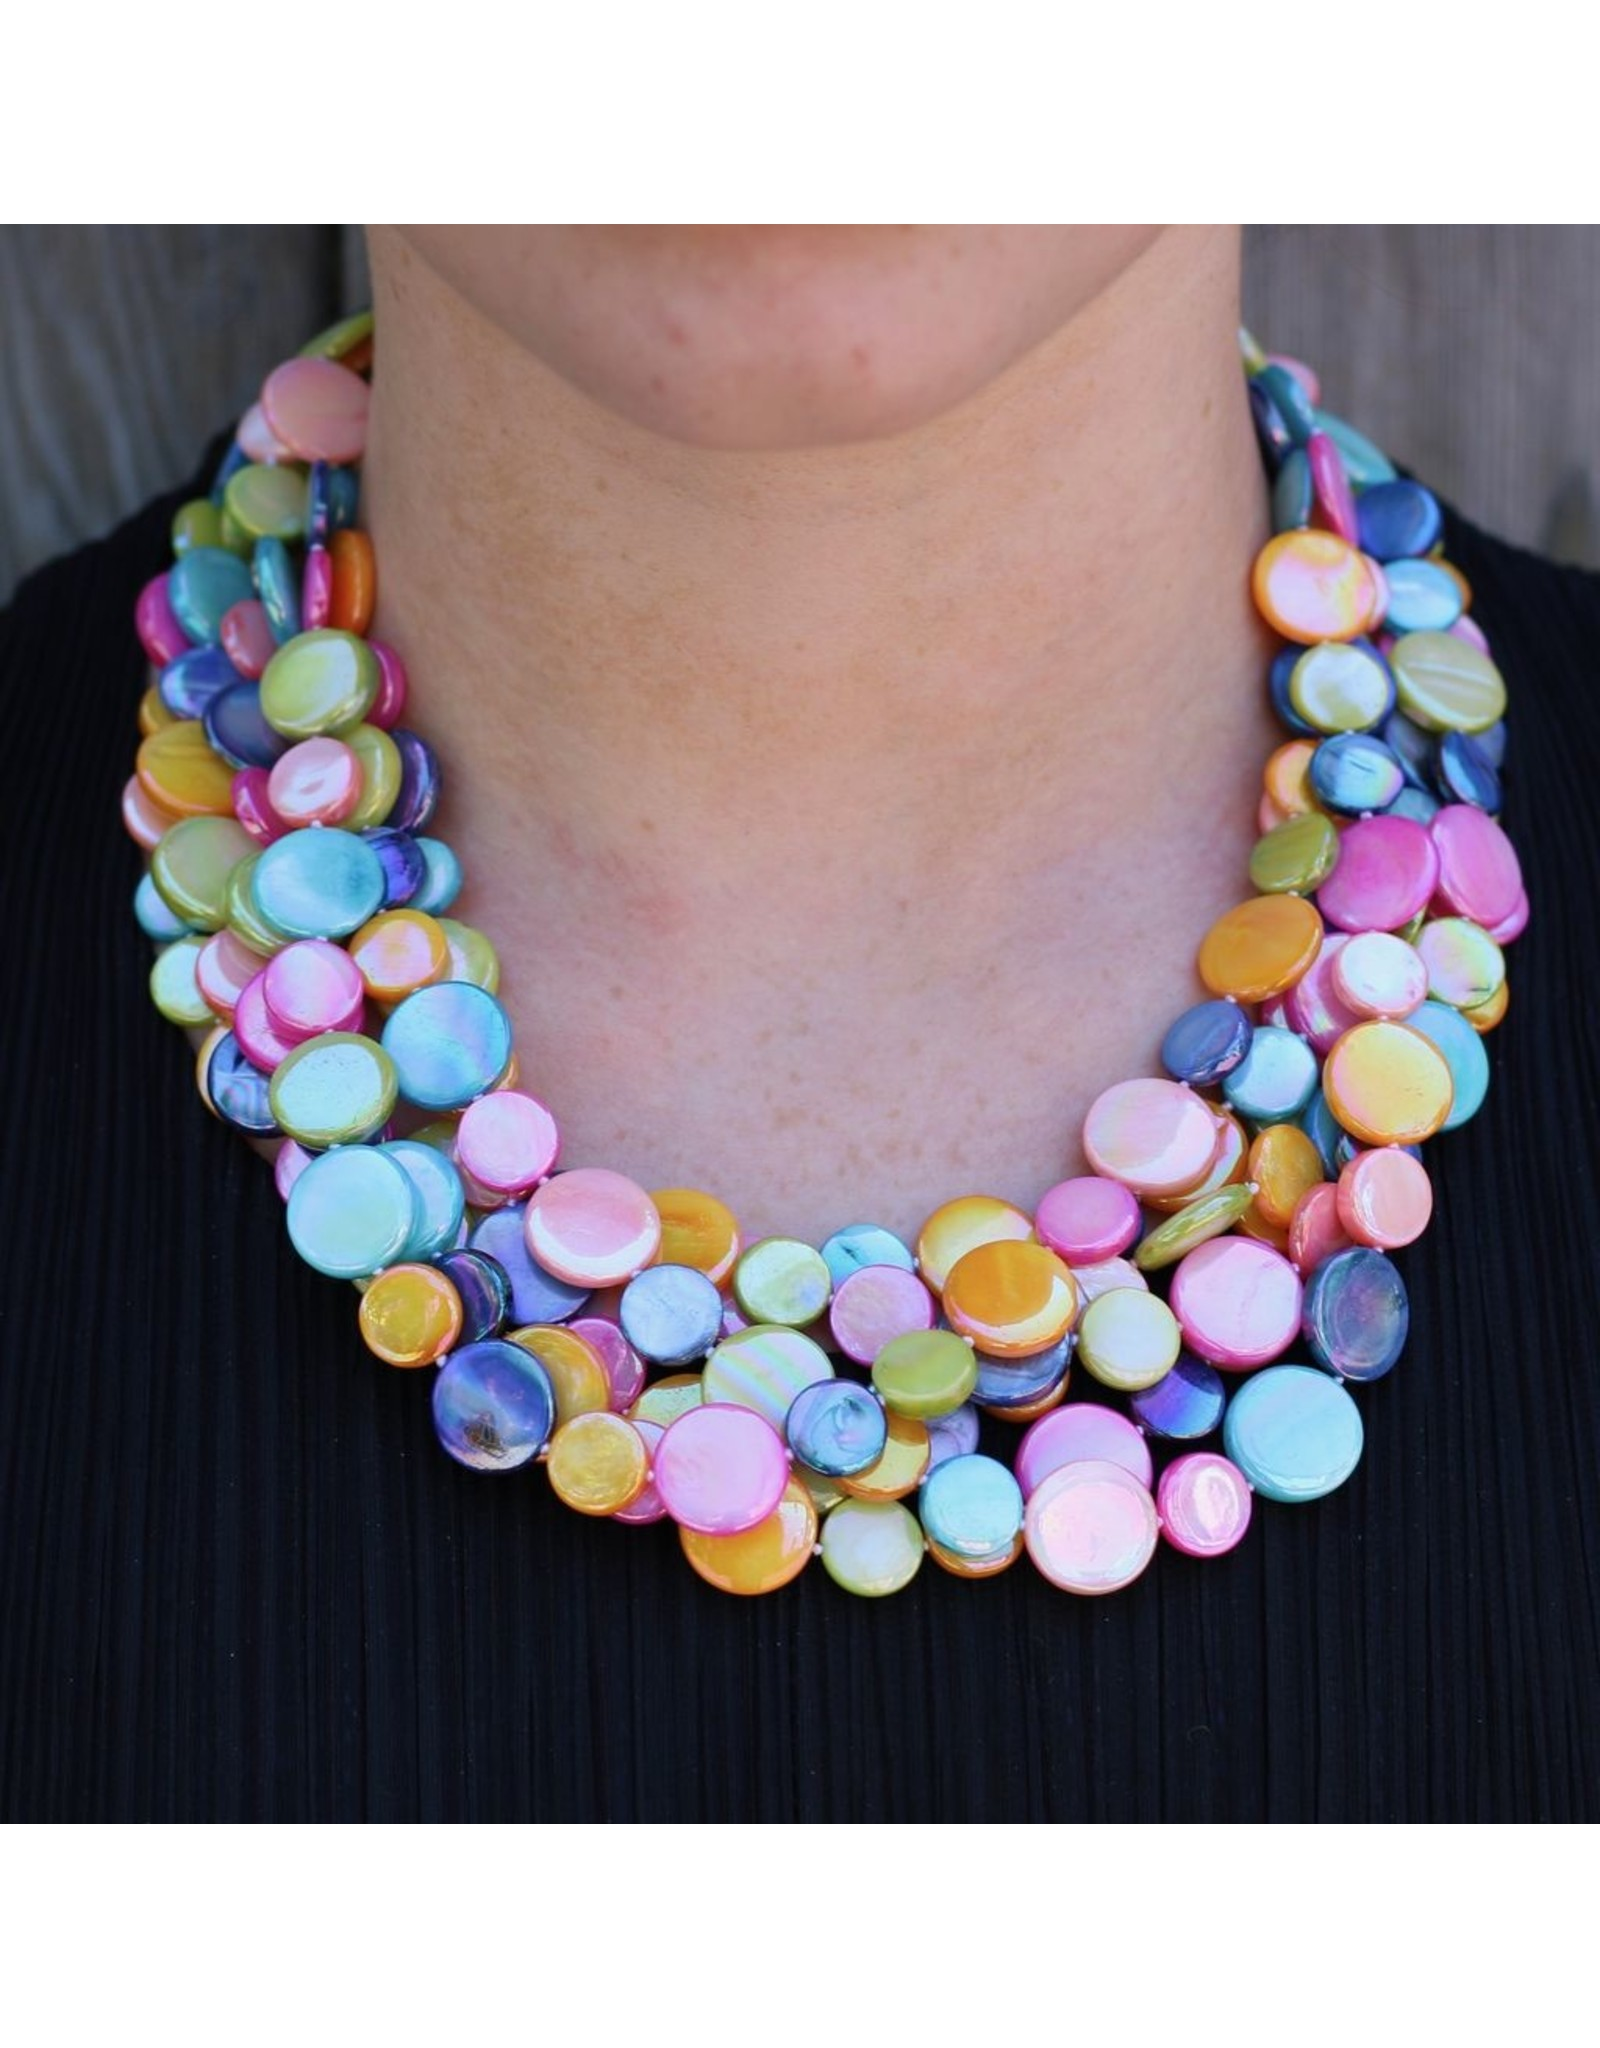 Sea Lily VCExclusives: Chimes Glass Beads Multi Colored Bright